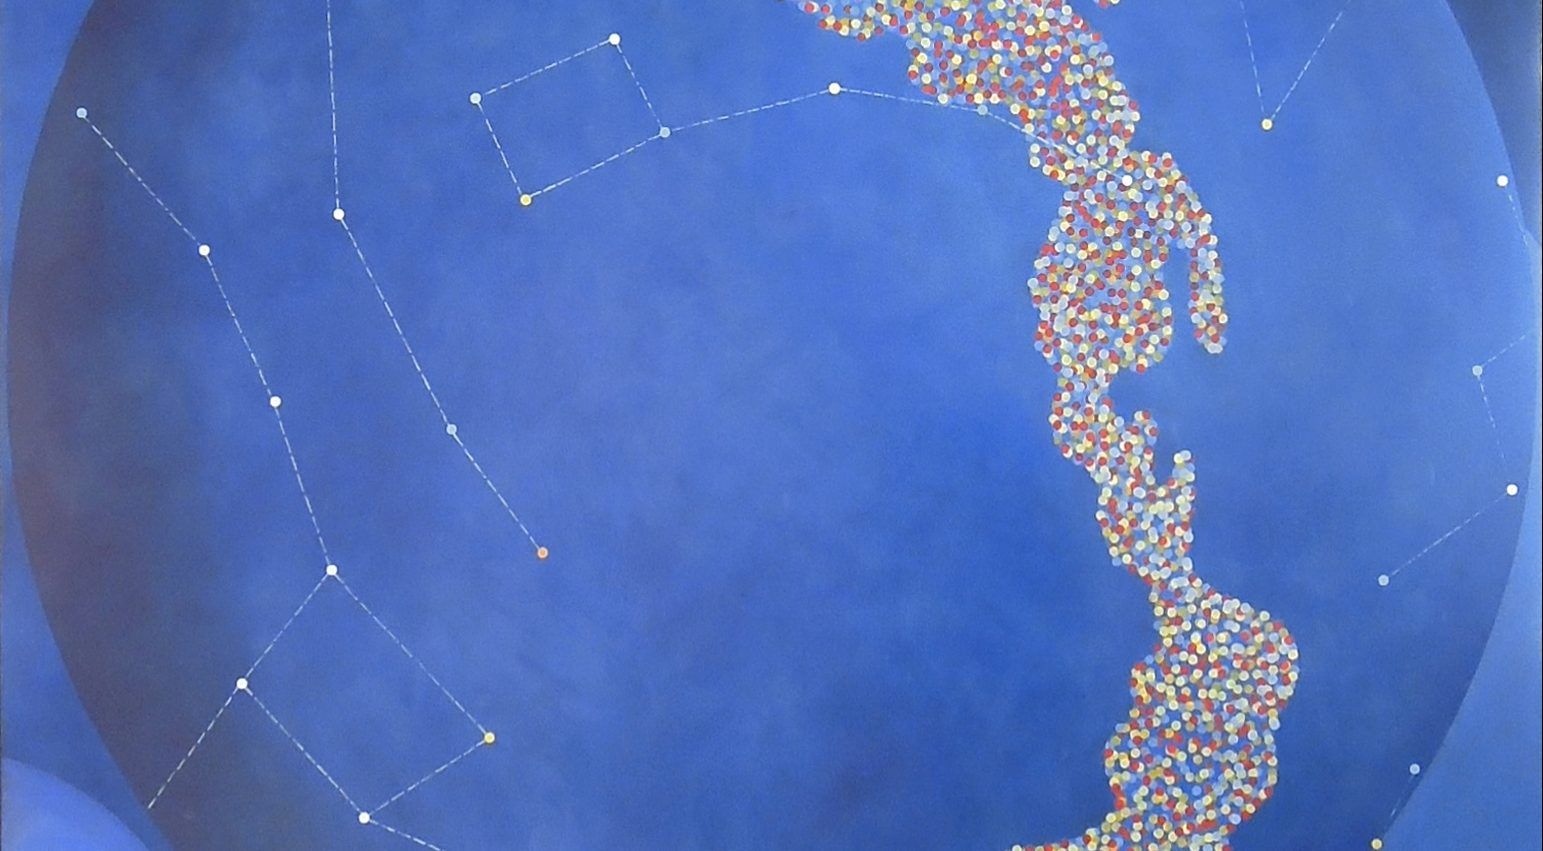 Constellation artwork by Lori Tremblay